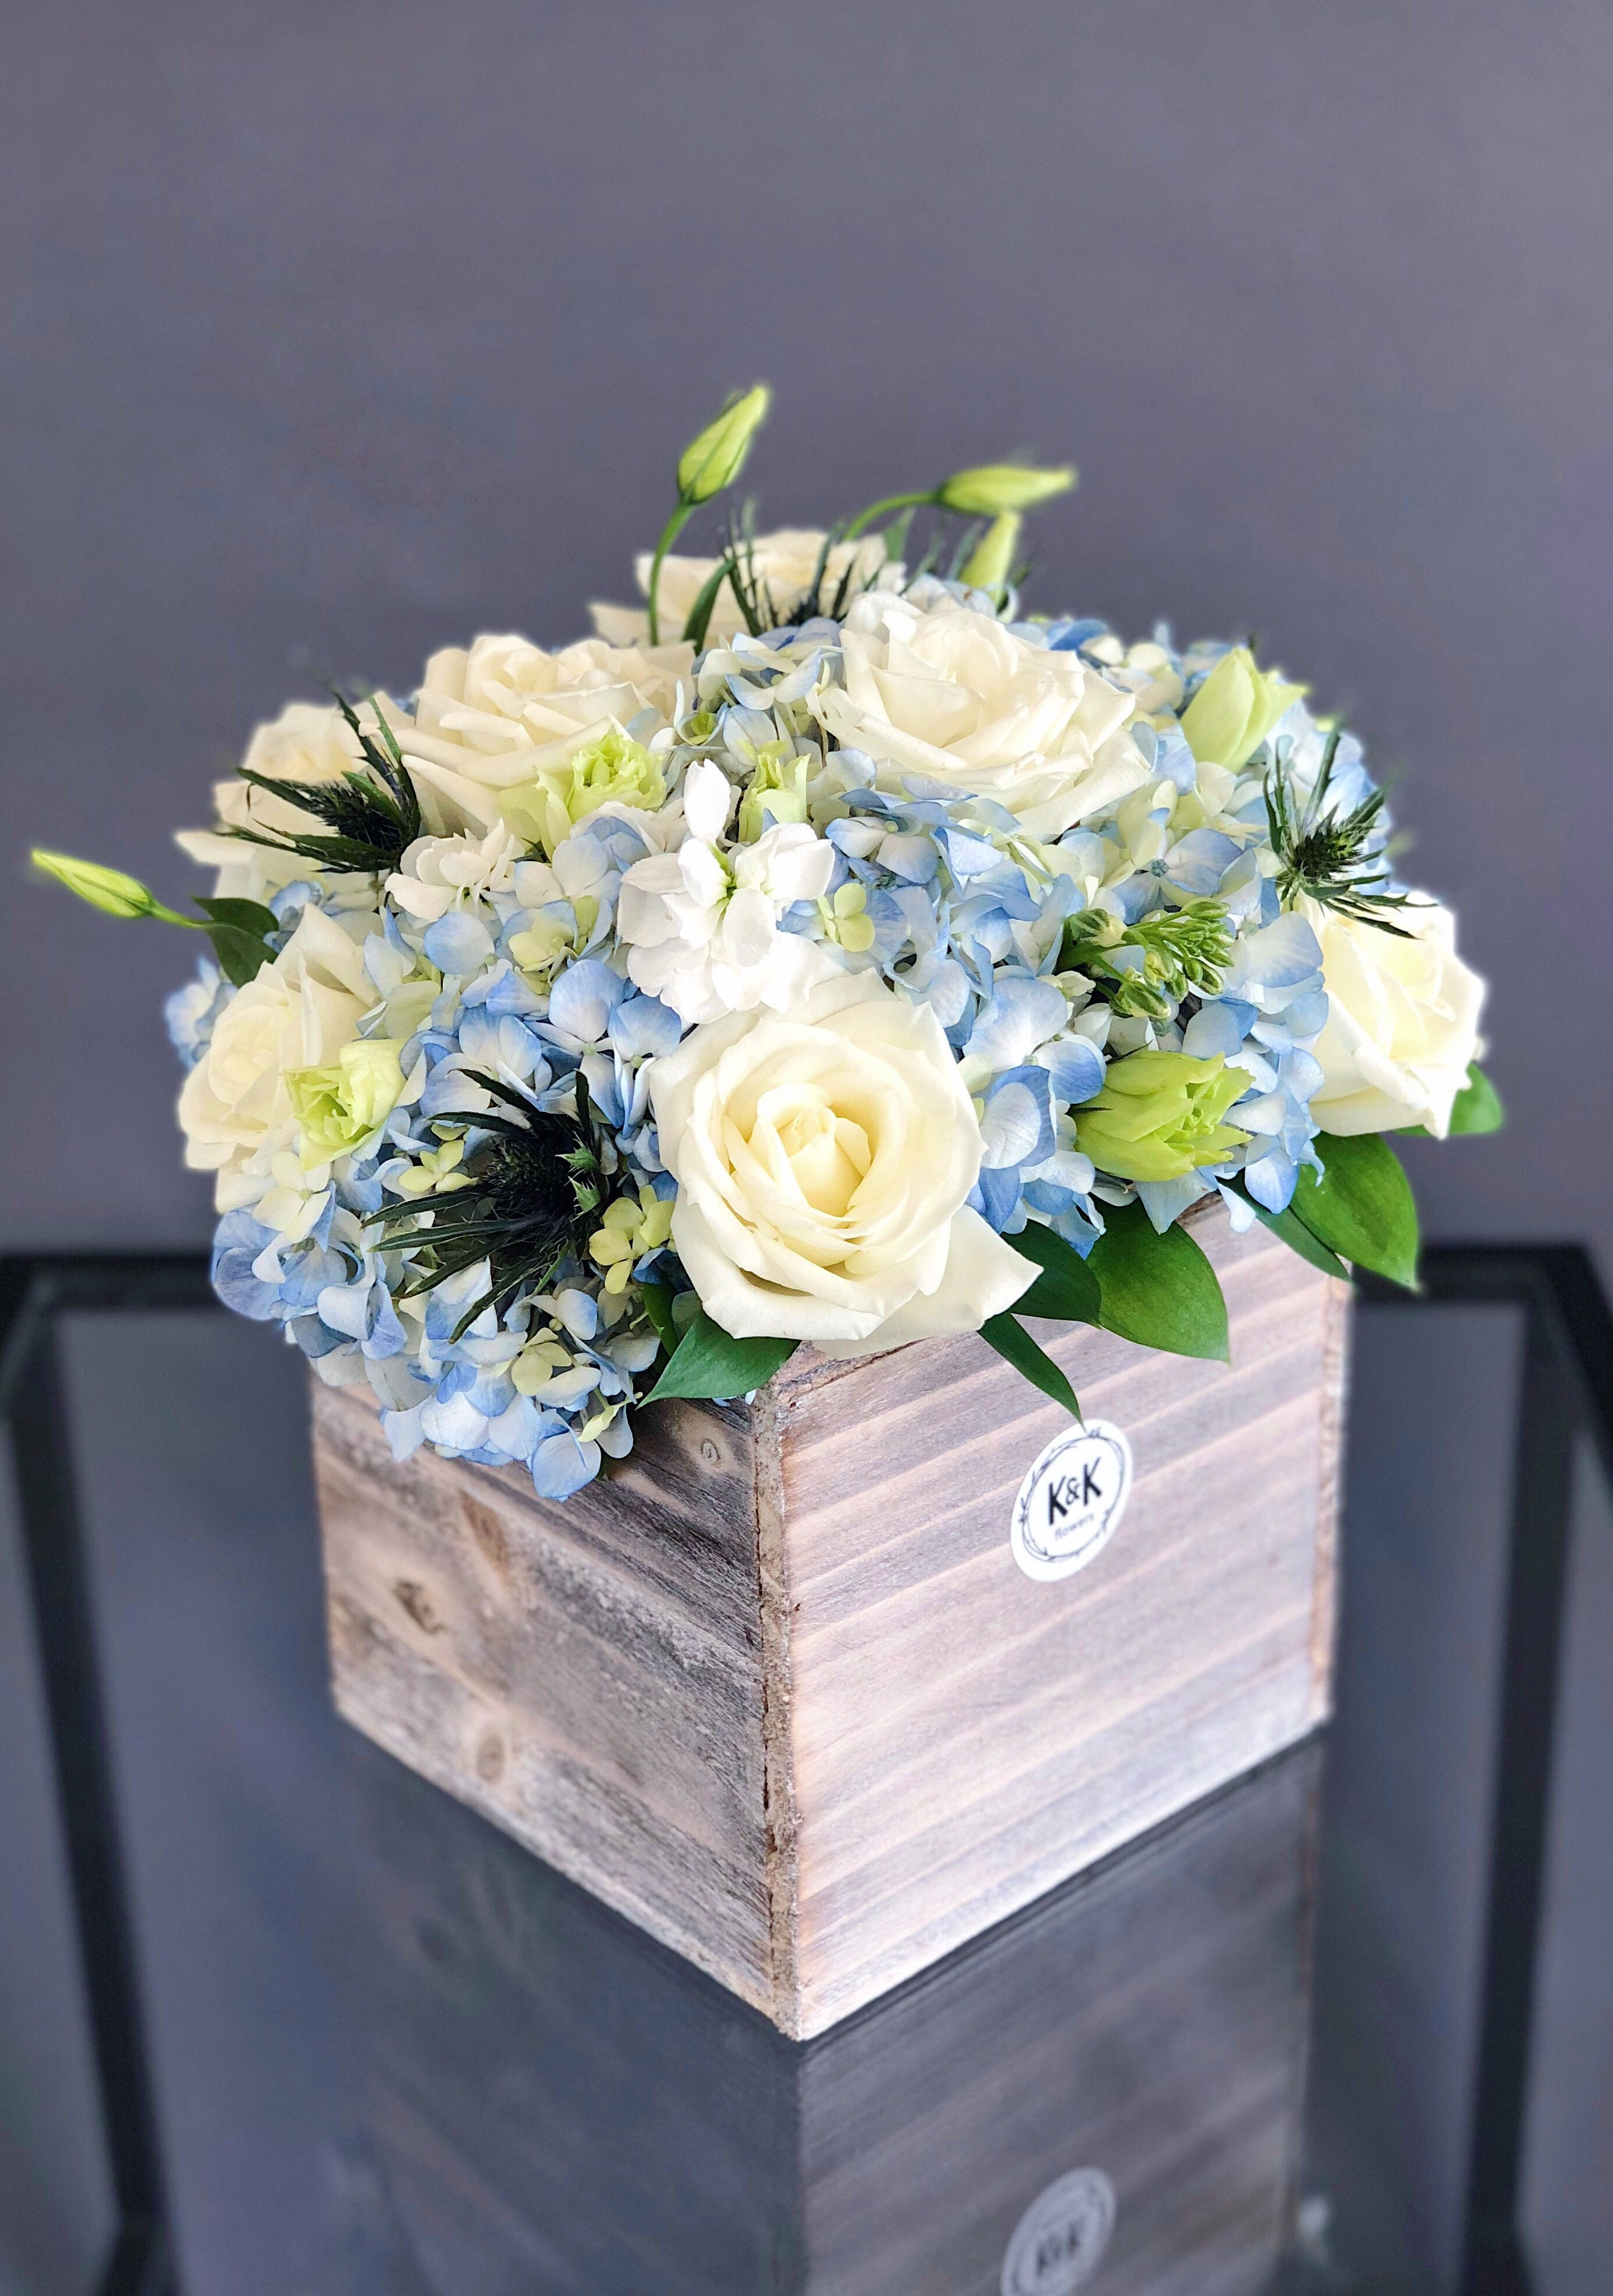 Large Wood Box Arrangement For A Table With White Roses Blue Hydrangeas And Wh Blue Flower Arrangements Blue Flower Centerpieces Beautiful Flower Arrangements